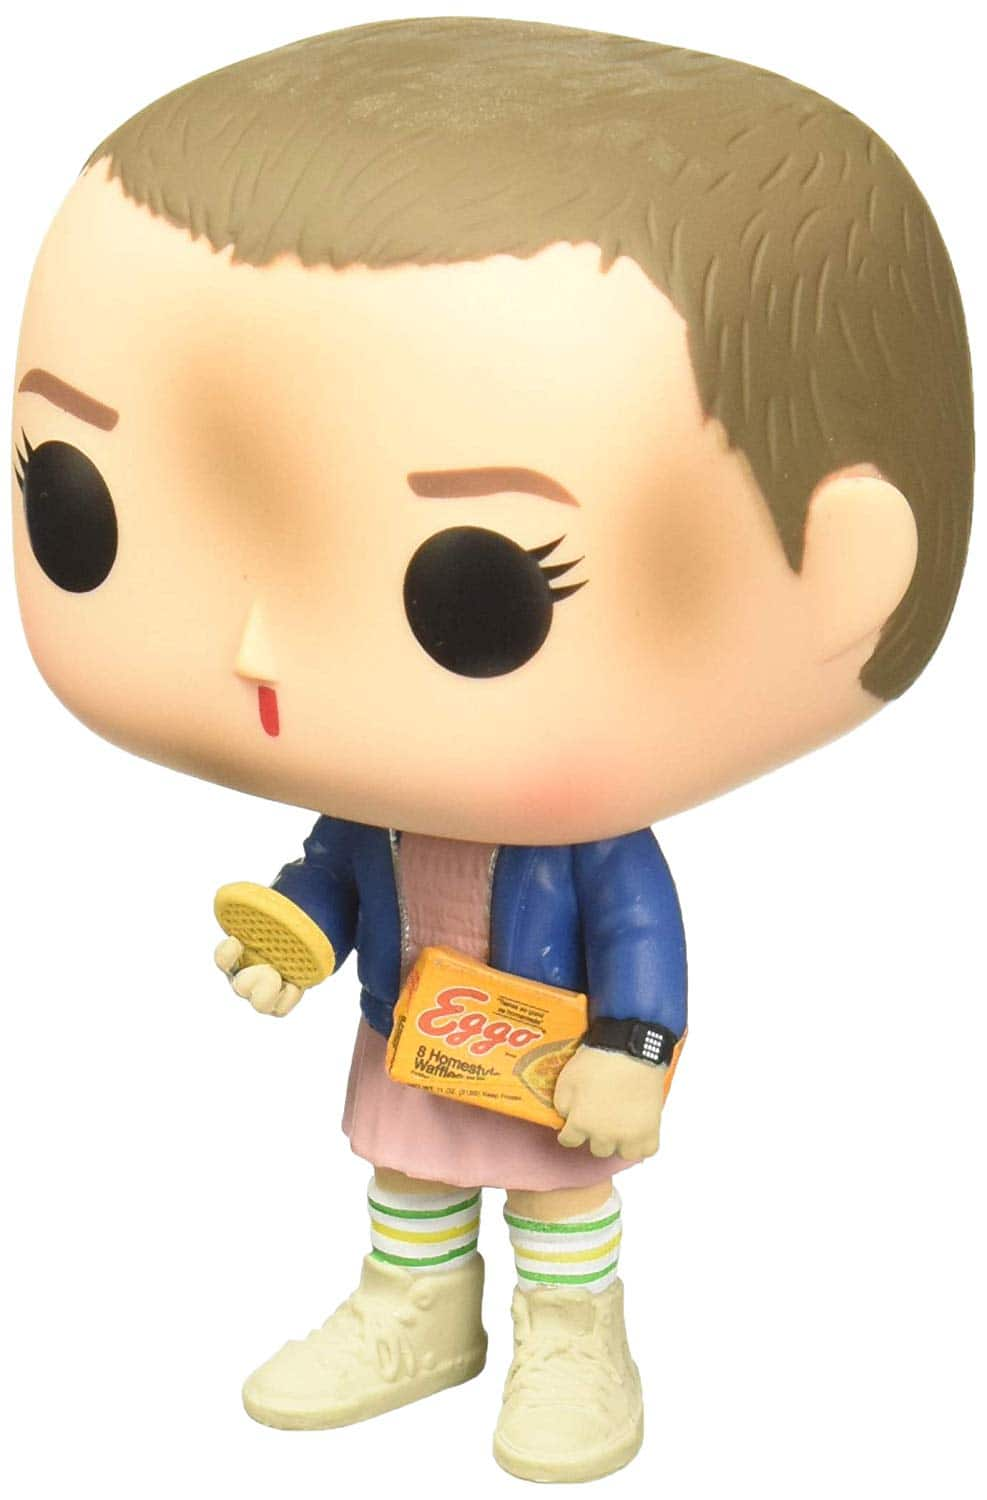 Funko Pop Stranger Things Eleven with Eggos Vinyl Figure , Styles May Vary - With/Without Blonde Wig $4